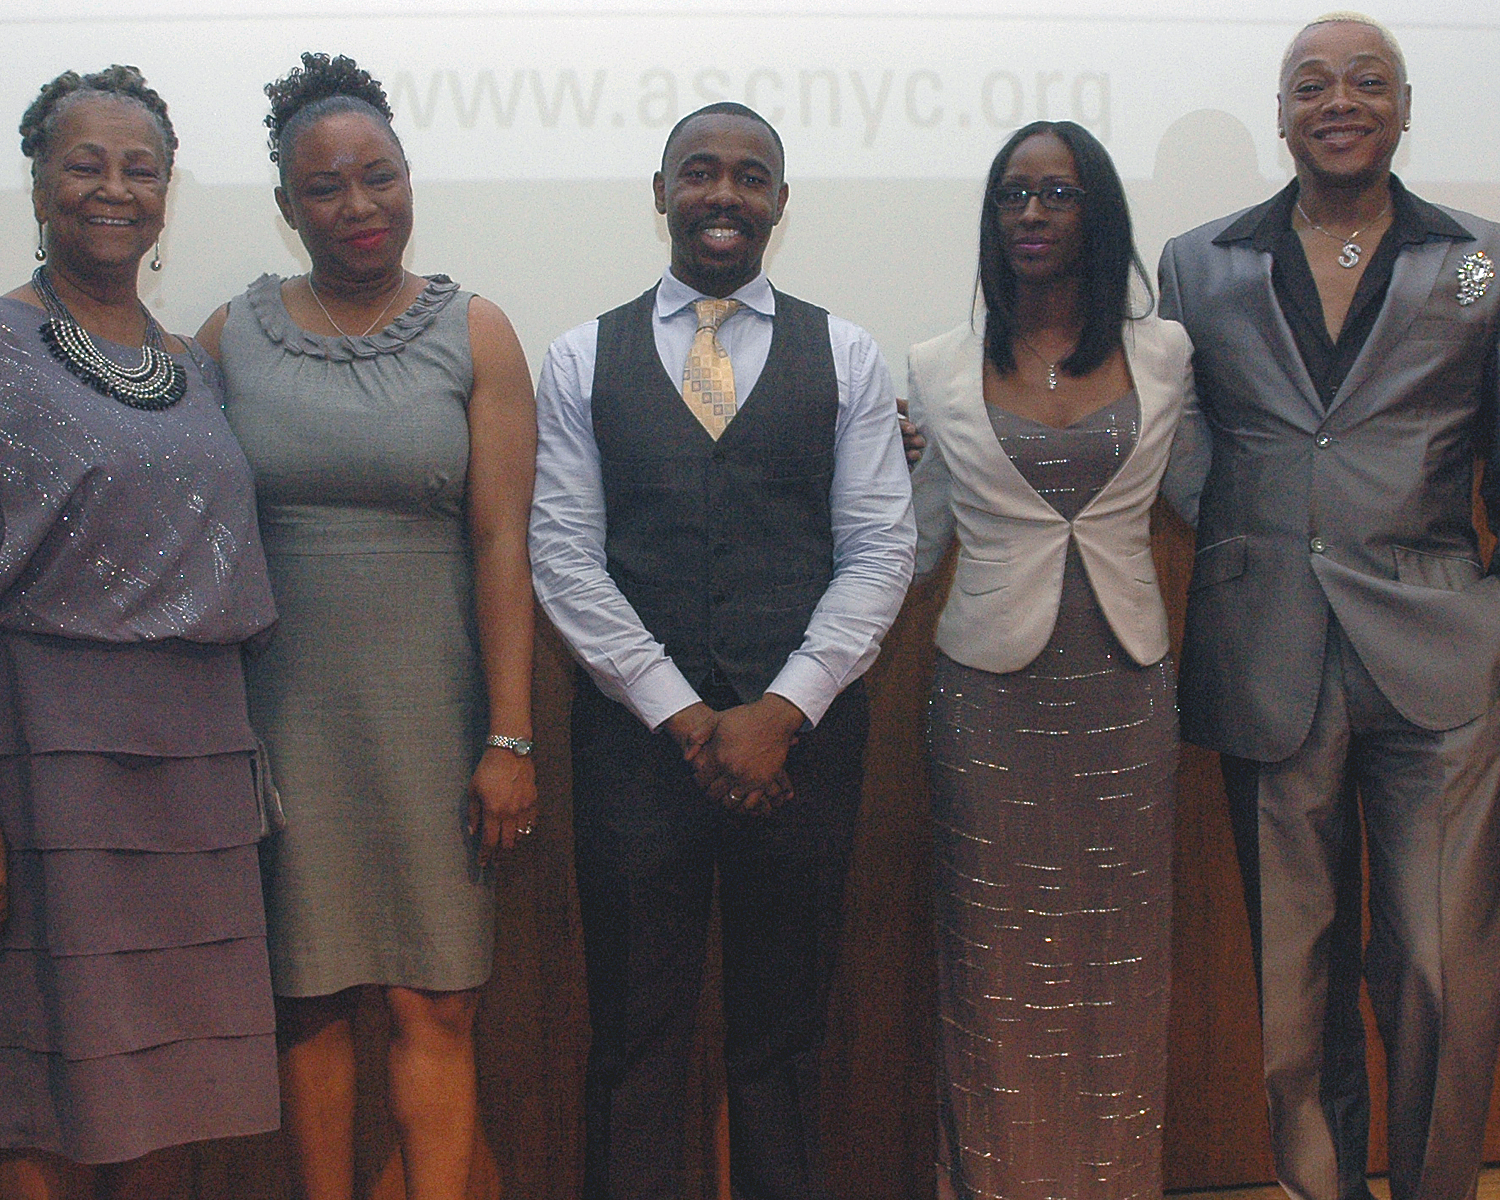 Joyce Myricks, Myrthelle Lauture, Jean Pierre Louis, Malika Minott and Stephen Wiliams